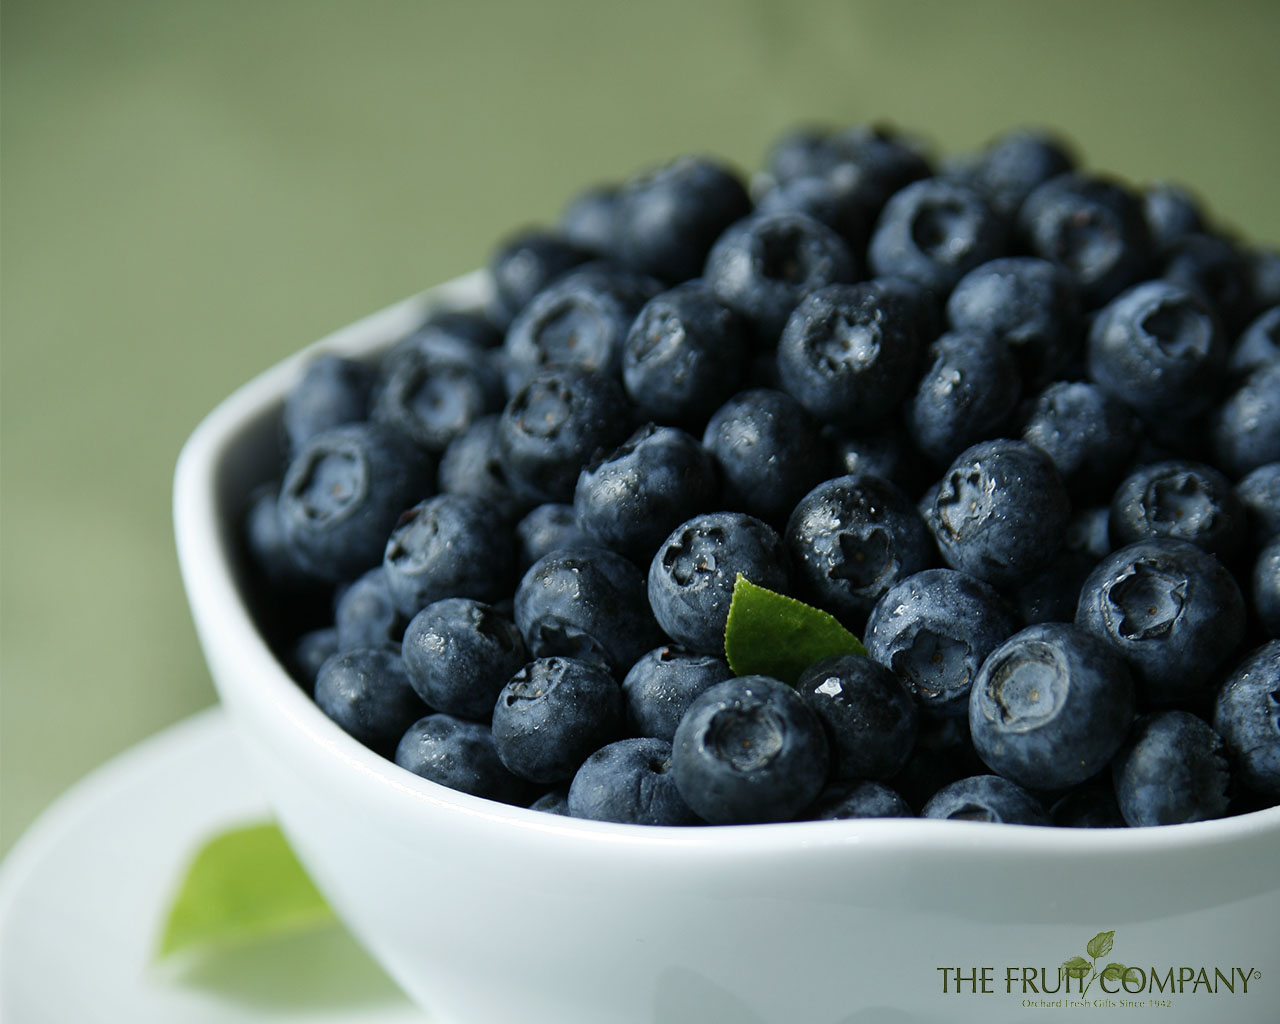 Wallpaper Wednesday: Delicious Blueberrries | The Fruit ...